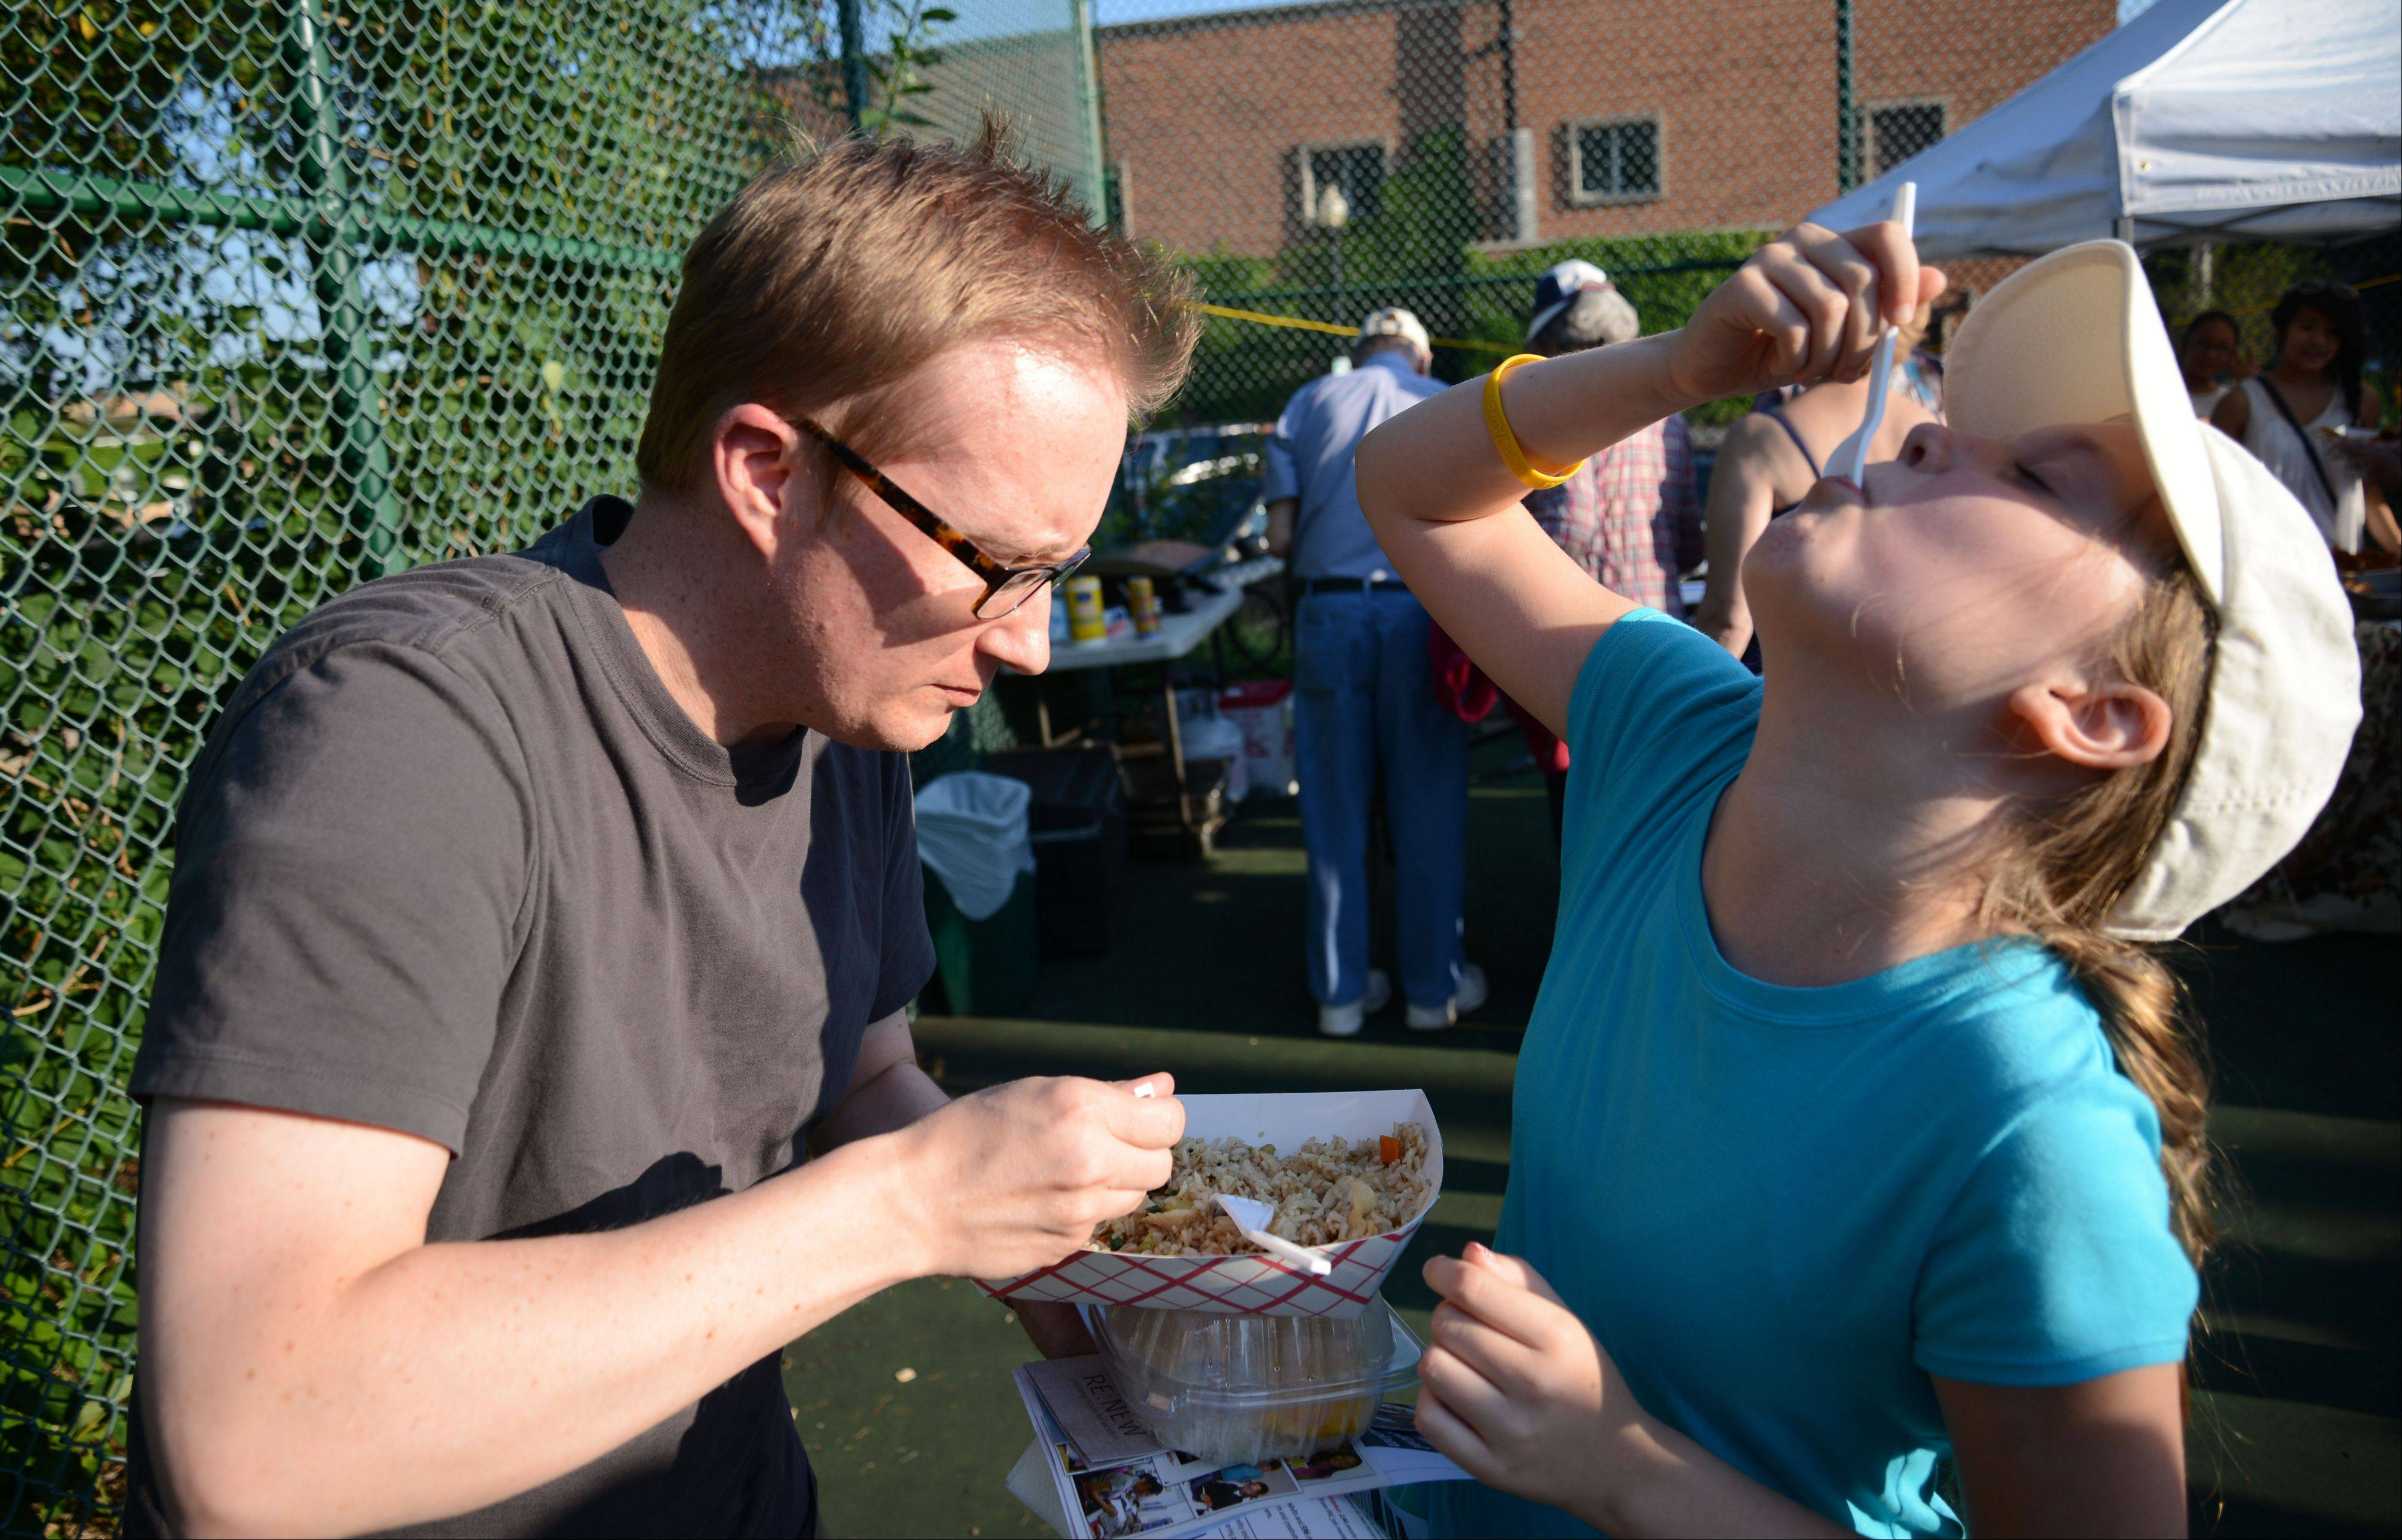 Ben Kopchick and his daughter Kathryn, 11, both of Wheaton, enjoy some fried rice at Wheaton World Tour at Memorial Park Thursday. More than 300 people attended the event that celebrated the culture within the community.